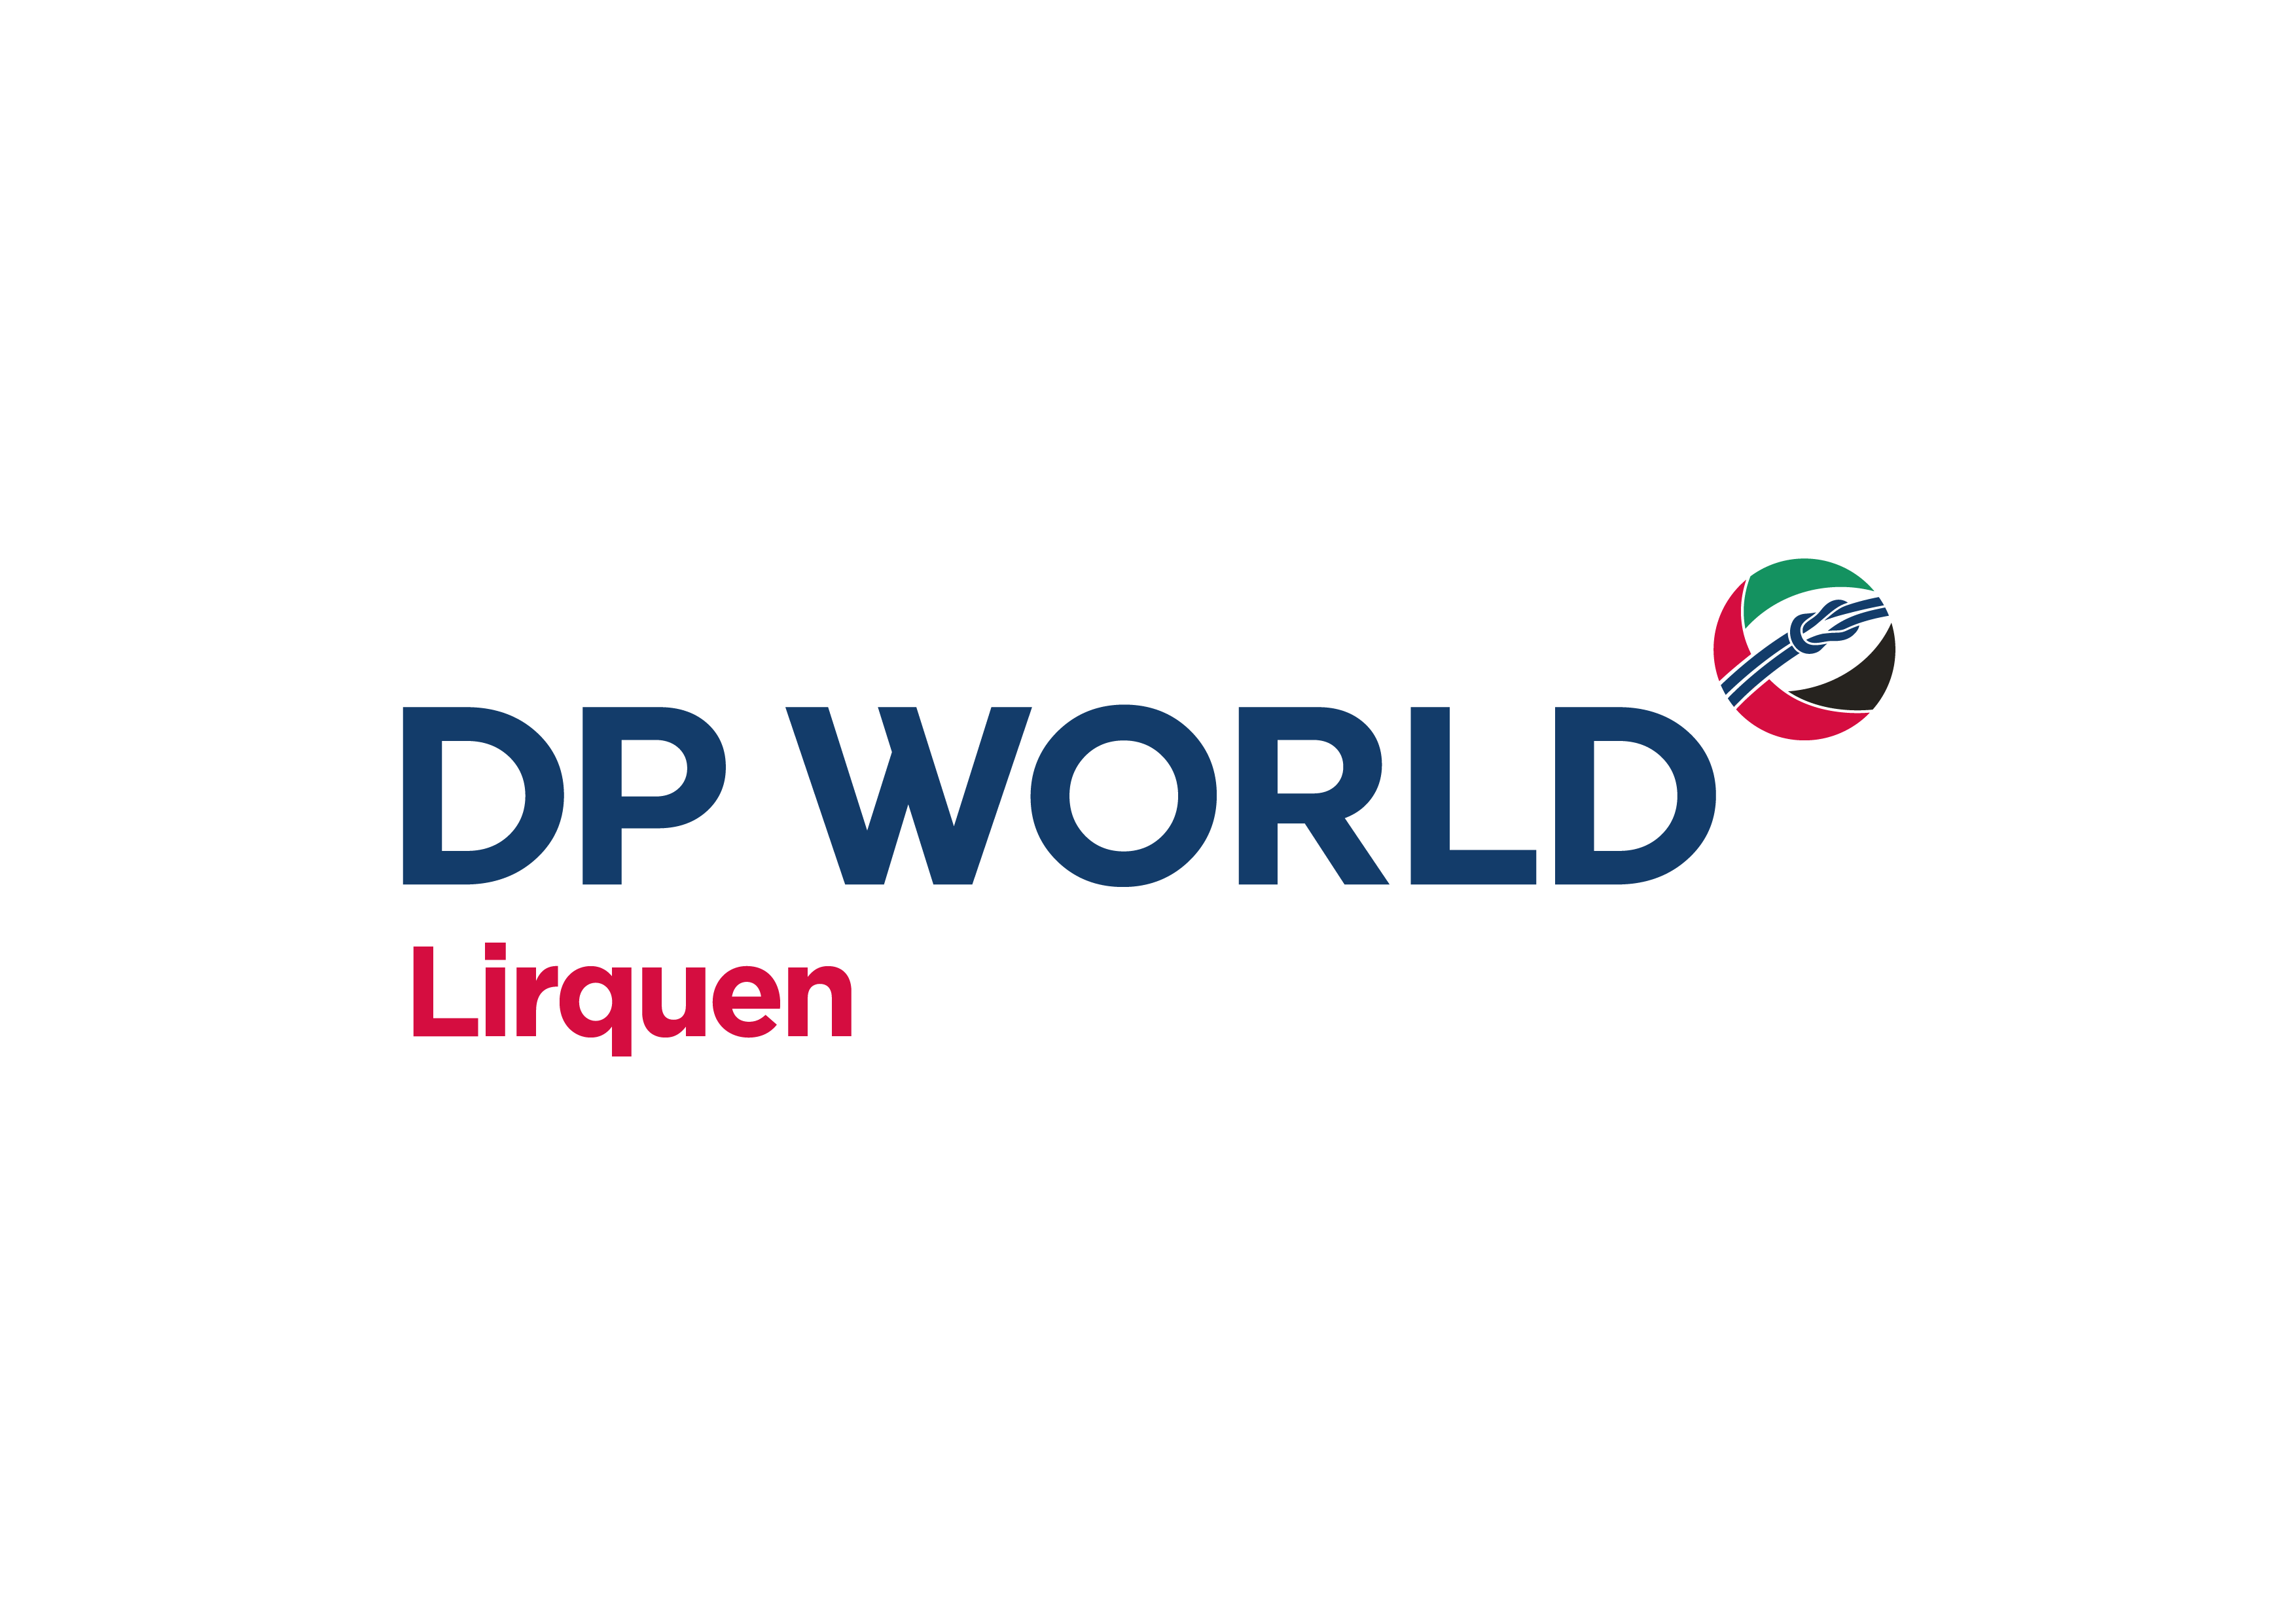 DP World Lirquén